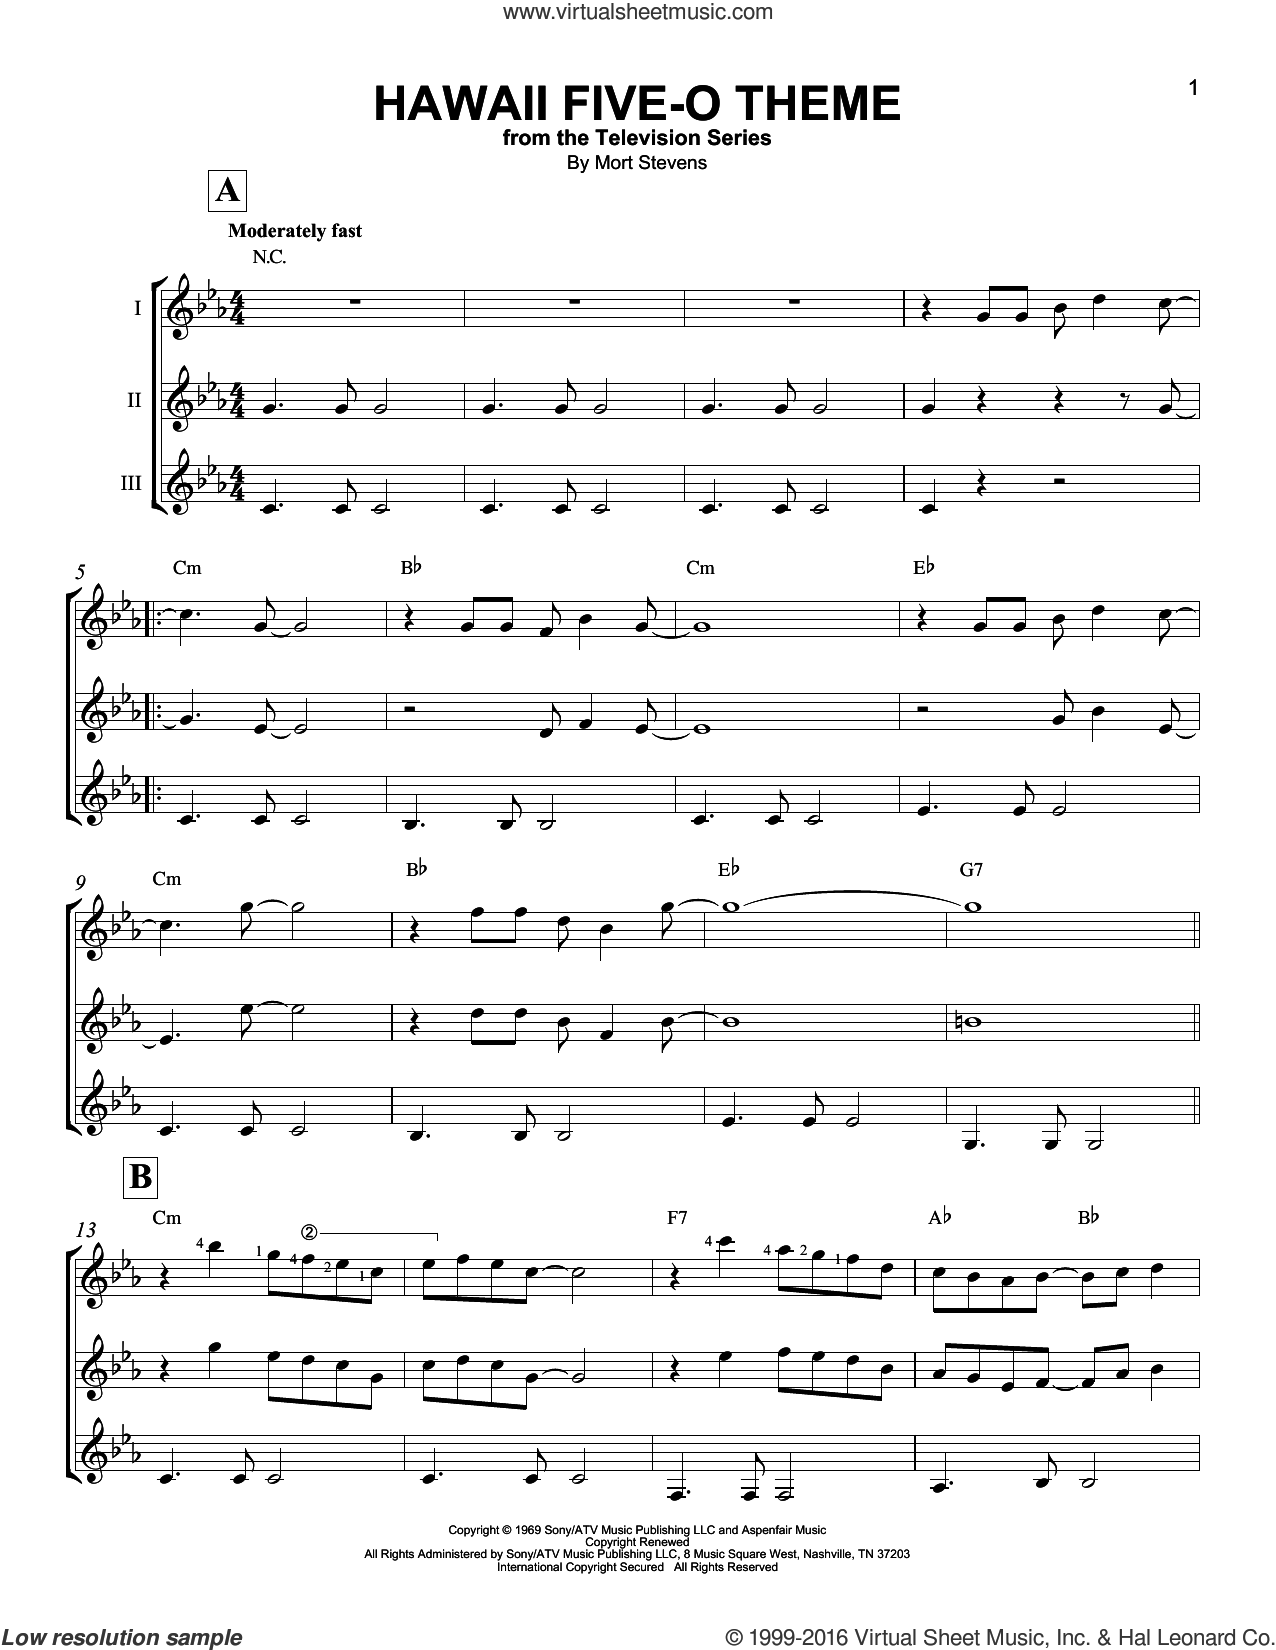 Hawaii Five-O Theme sheet music for guitar ensemble by The Ventures and Mort Stevens, intermediate skill level